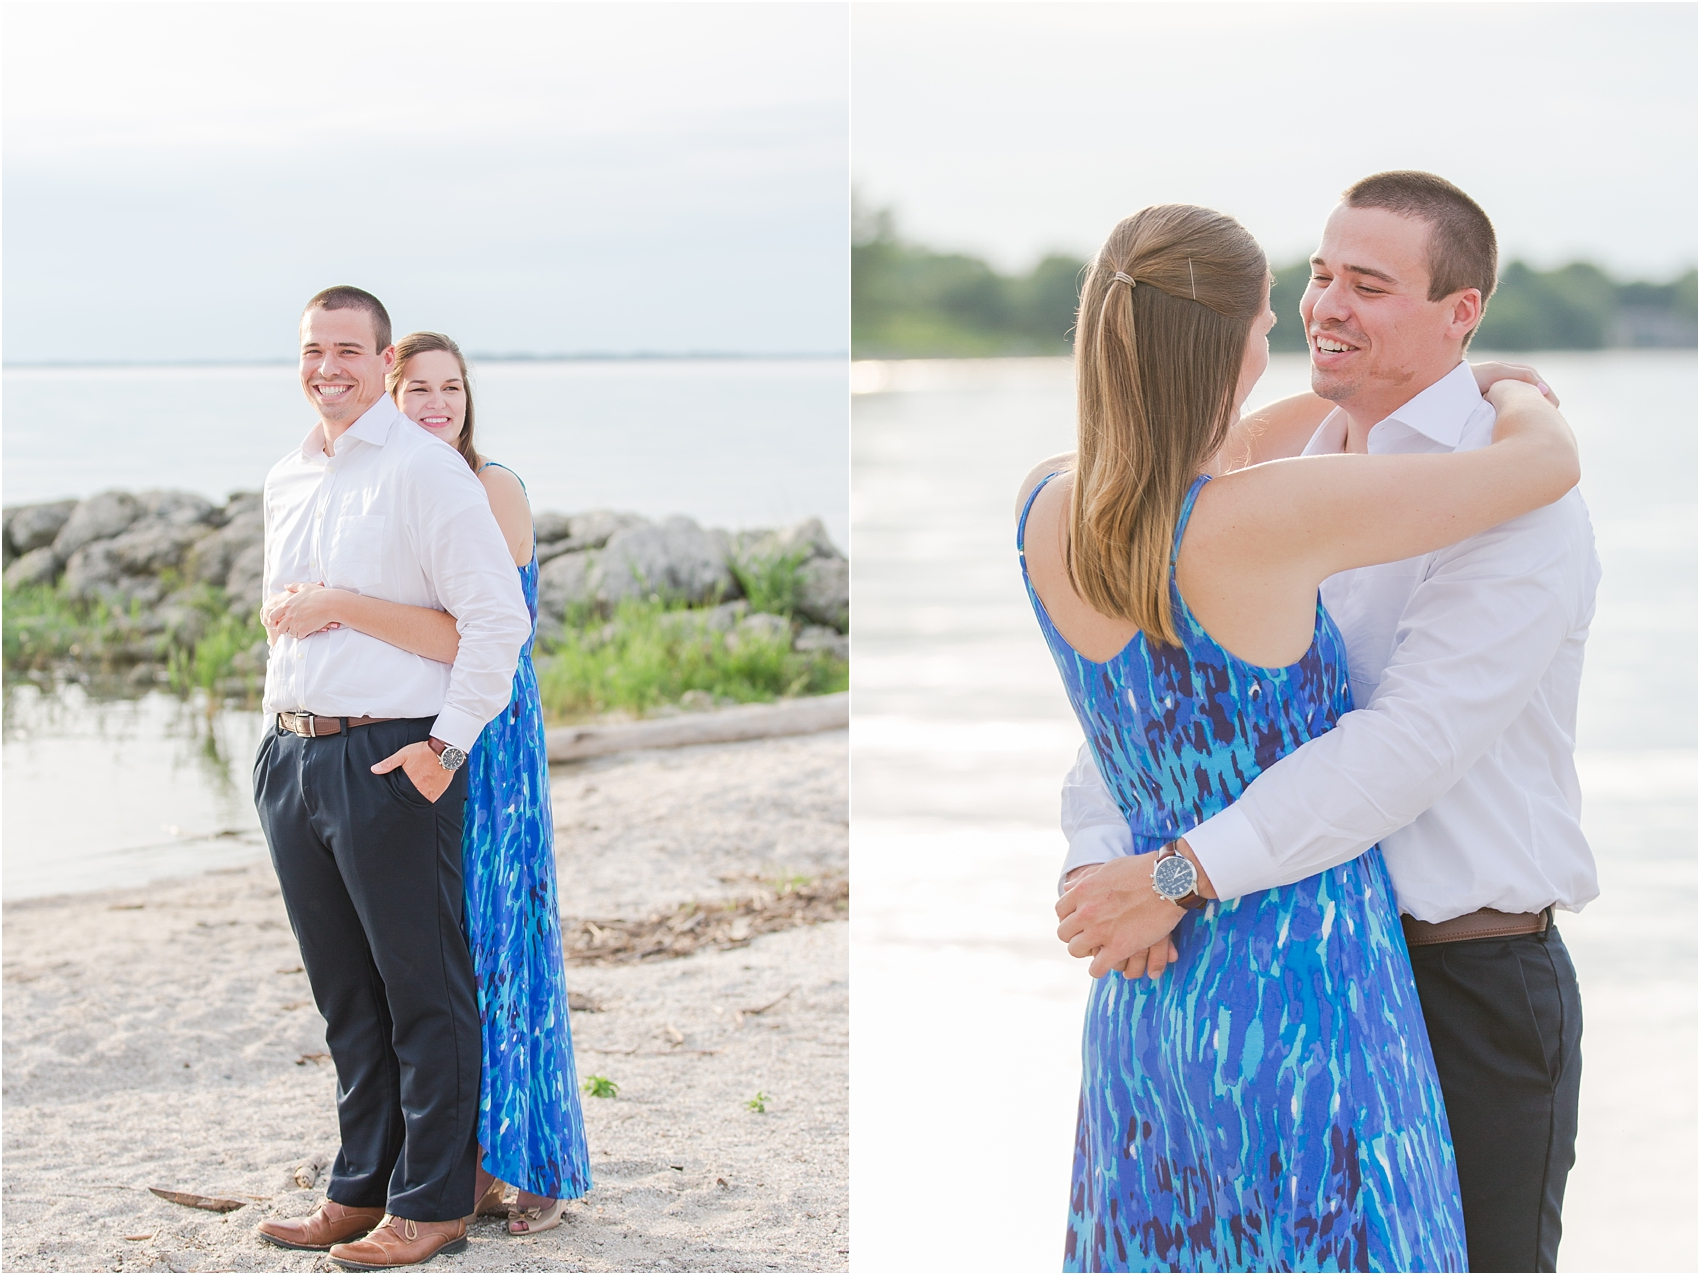 light-hearted-sunset-engagement-photos-at-the-beach-in-oregon-oh-by-courtney-carolyn-photography_0024.jpg